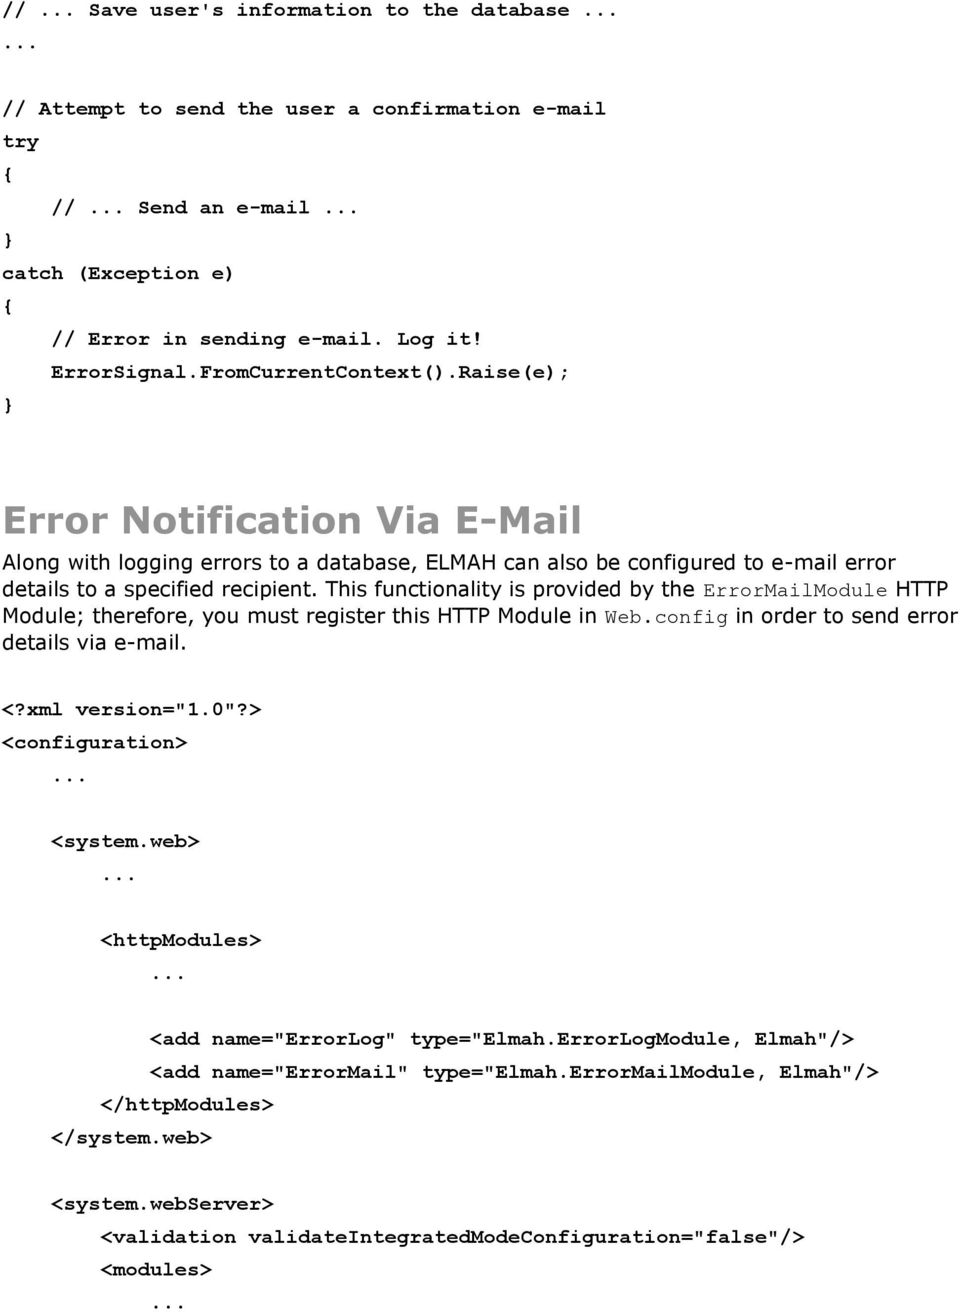 "This functionality is provided by the ErrorMailModule HTTP Module; therefore, you must register this HTTP Module in Web.config in order to send error details via e-mail. <?xml version=""1.0""?"